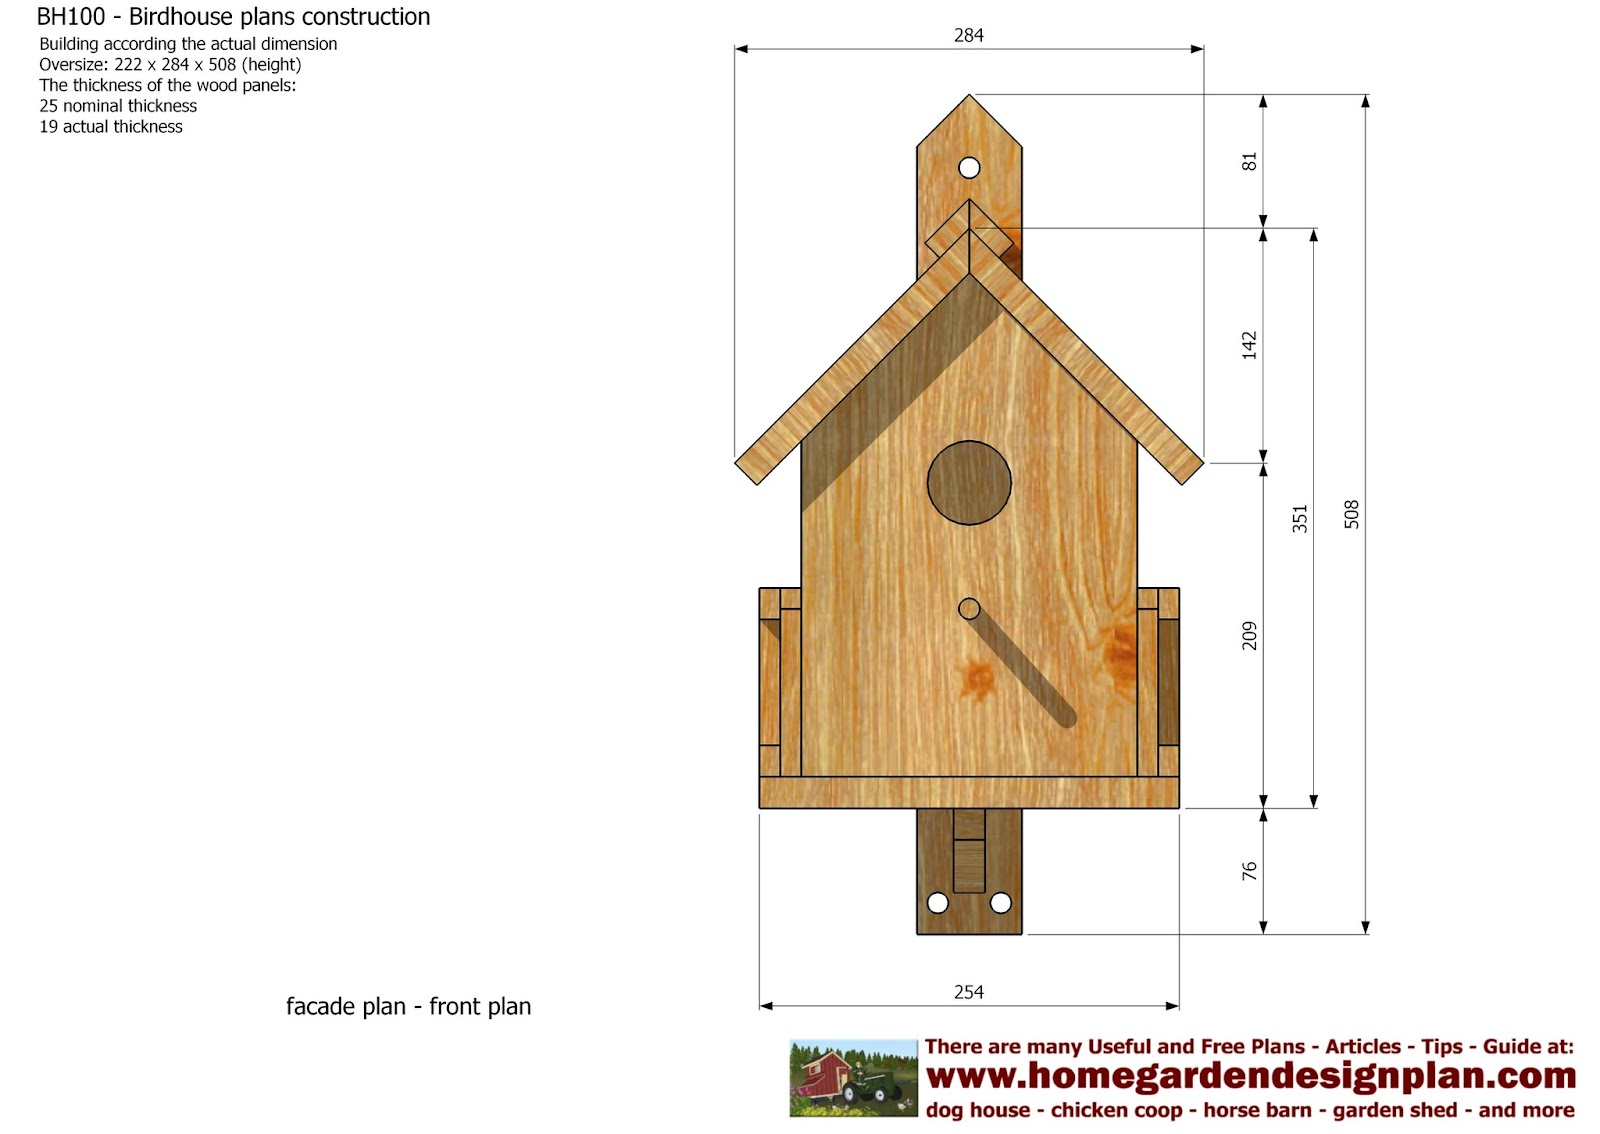 ... Plans Construction - Bird House Design - How To Build A Bird House